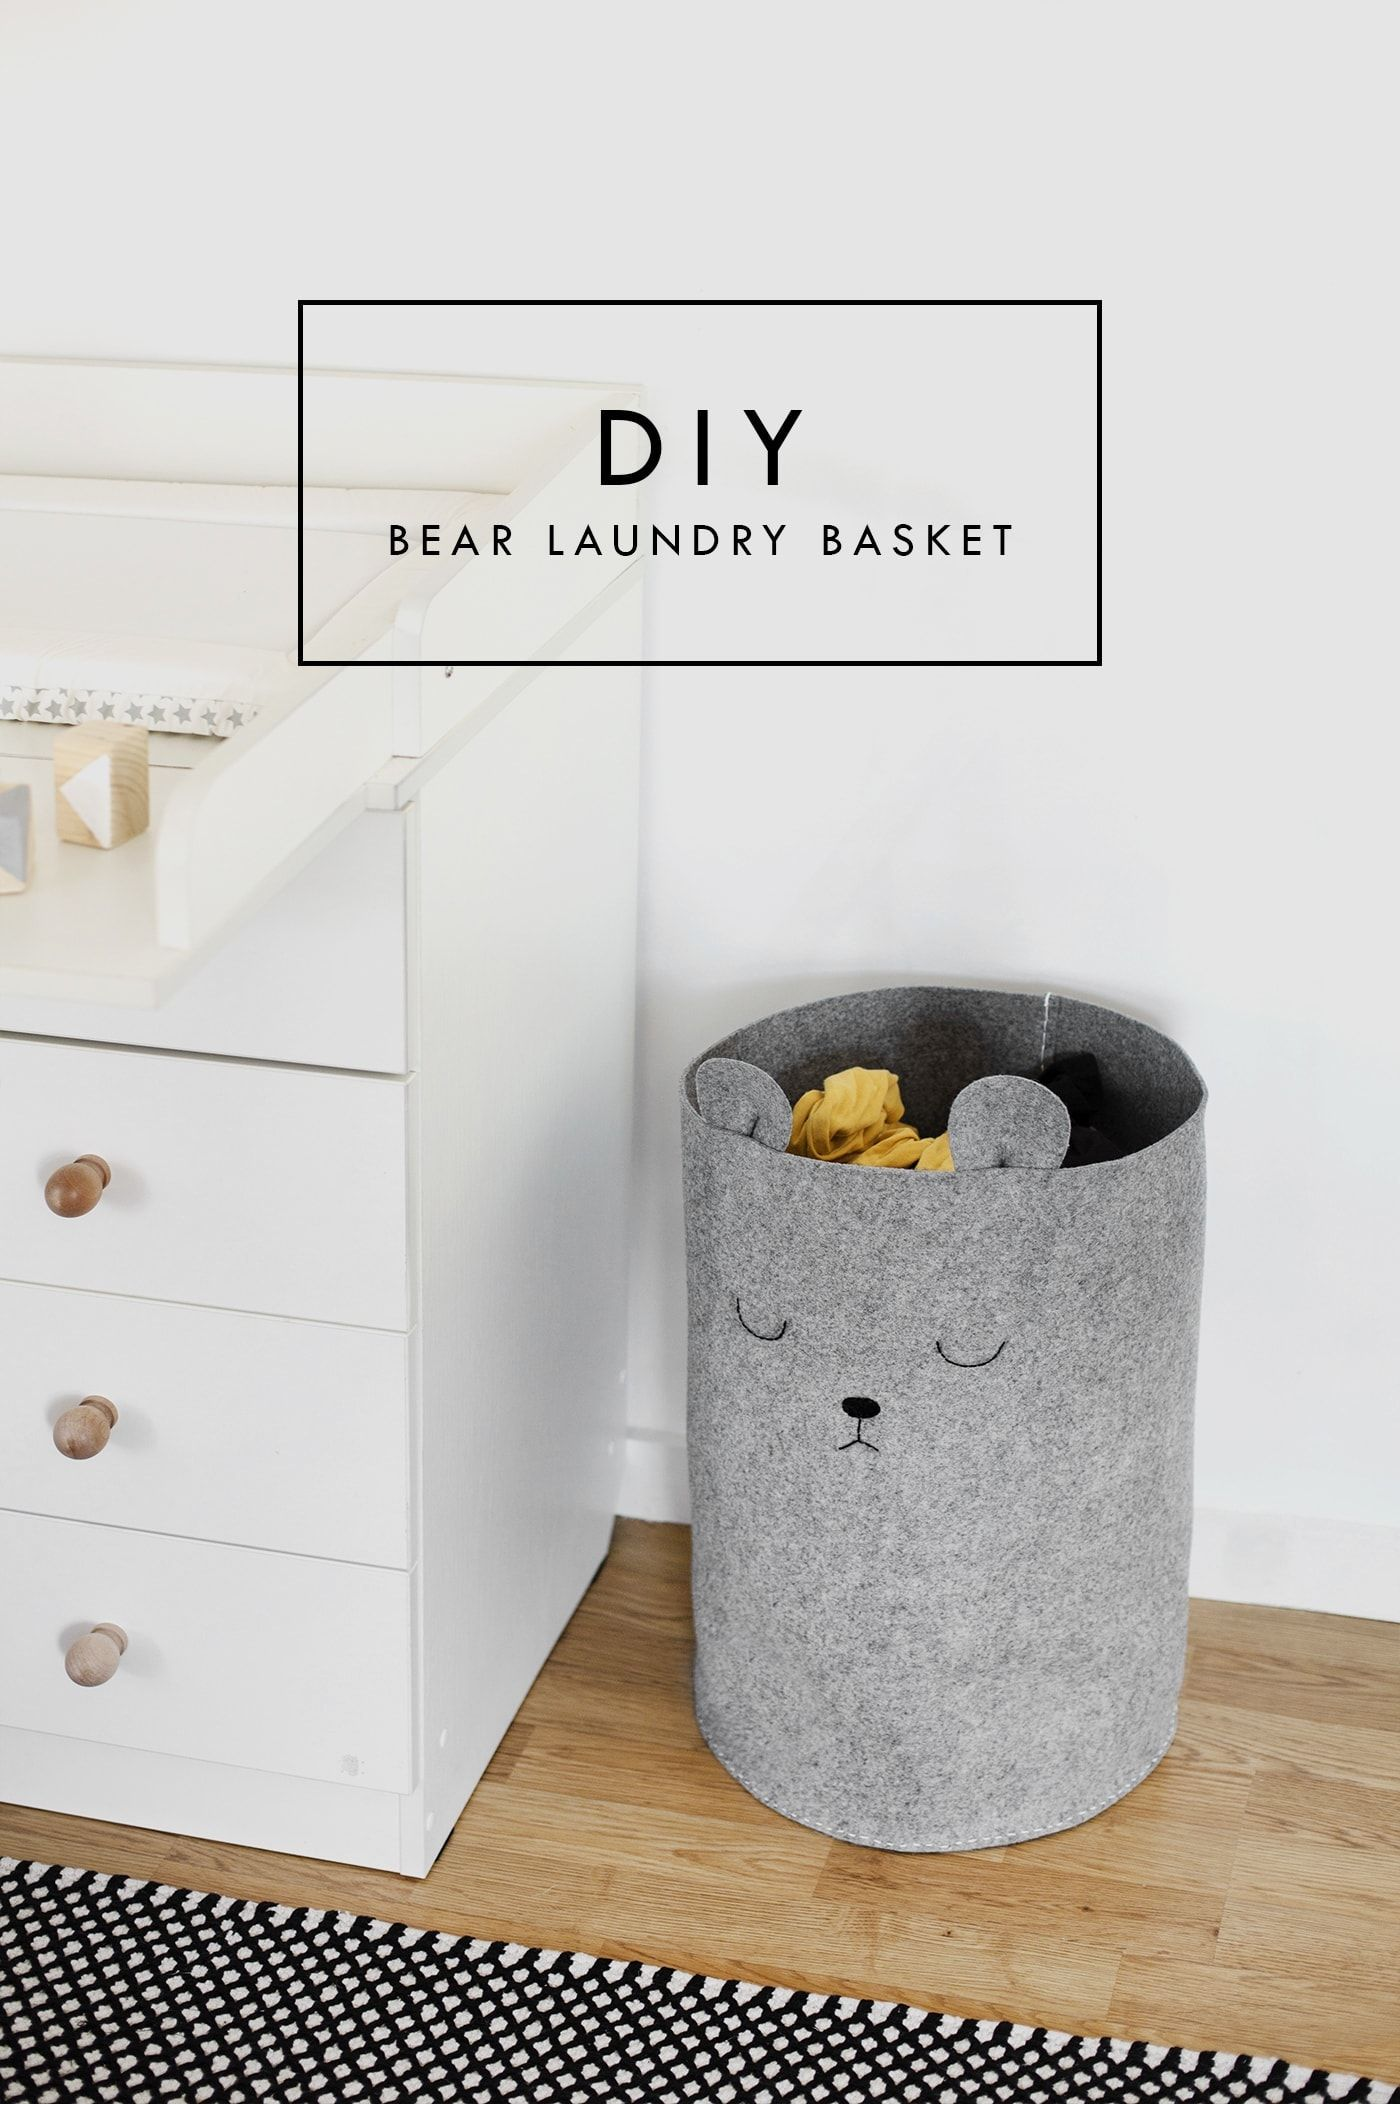 Pin on Laundry Room DIY Inspiration